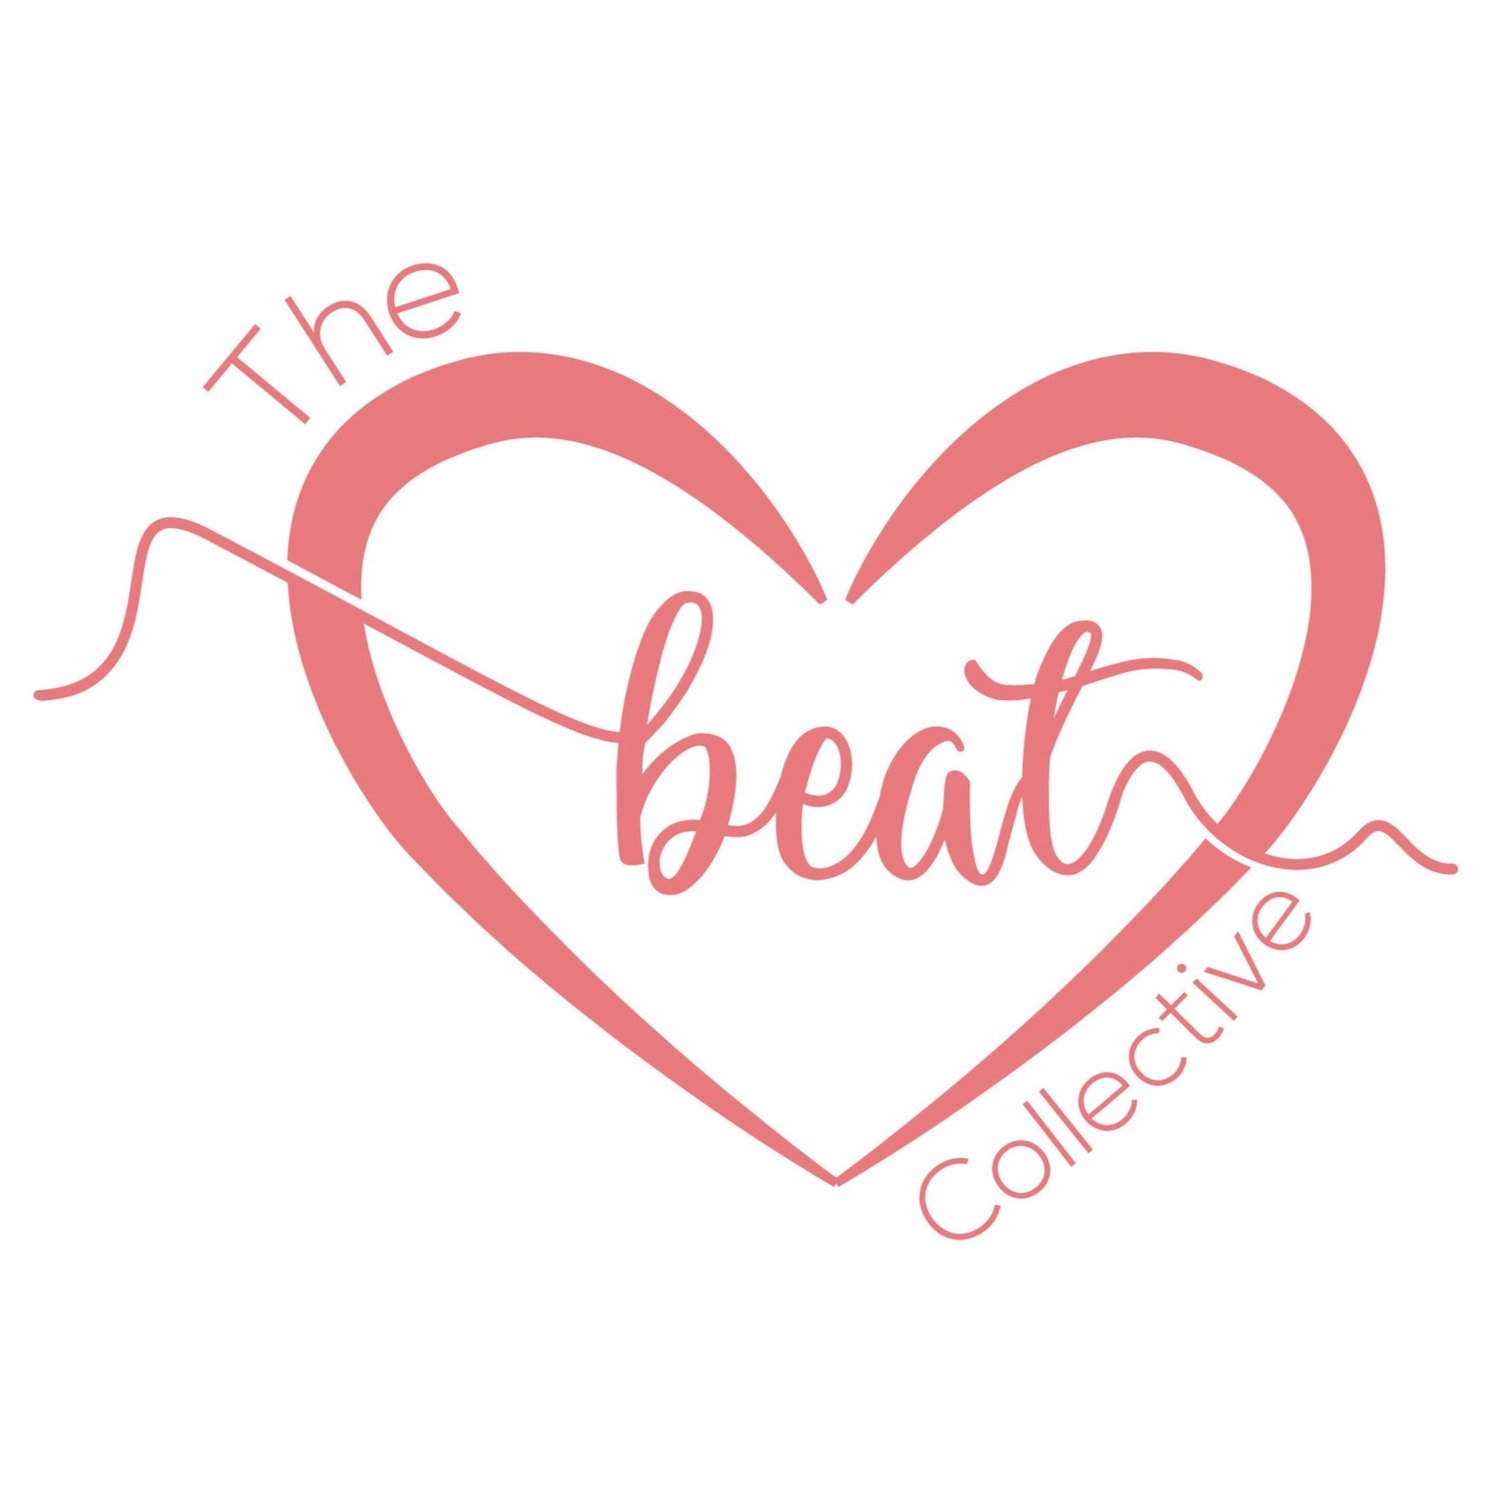 The Heartbeat Collective